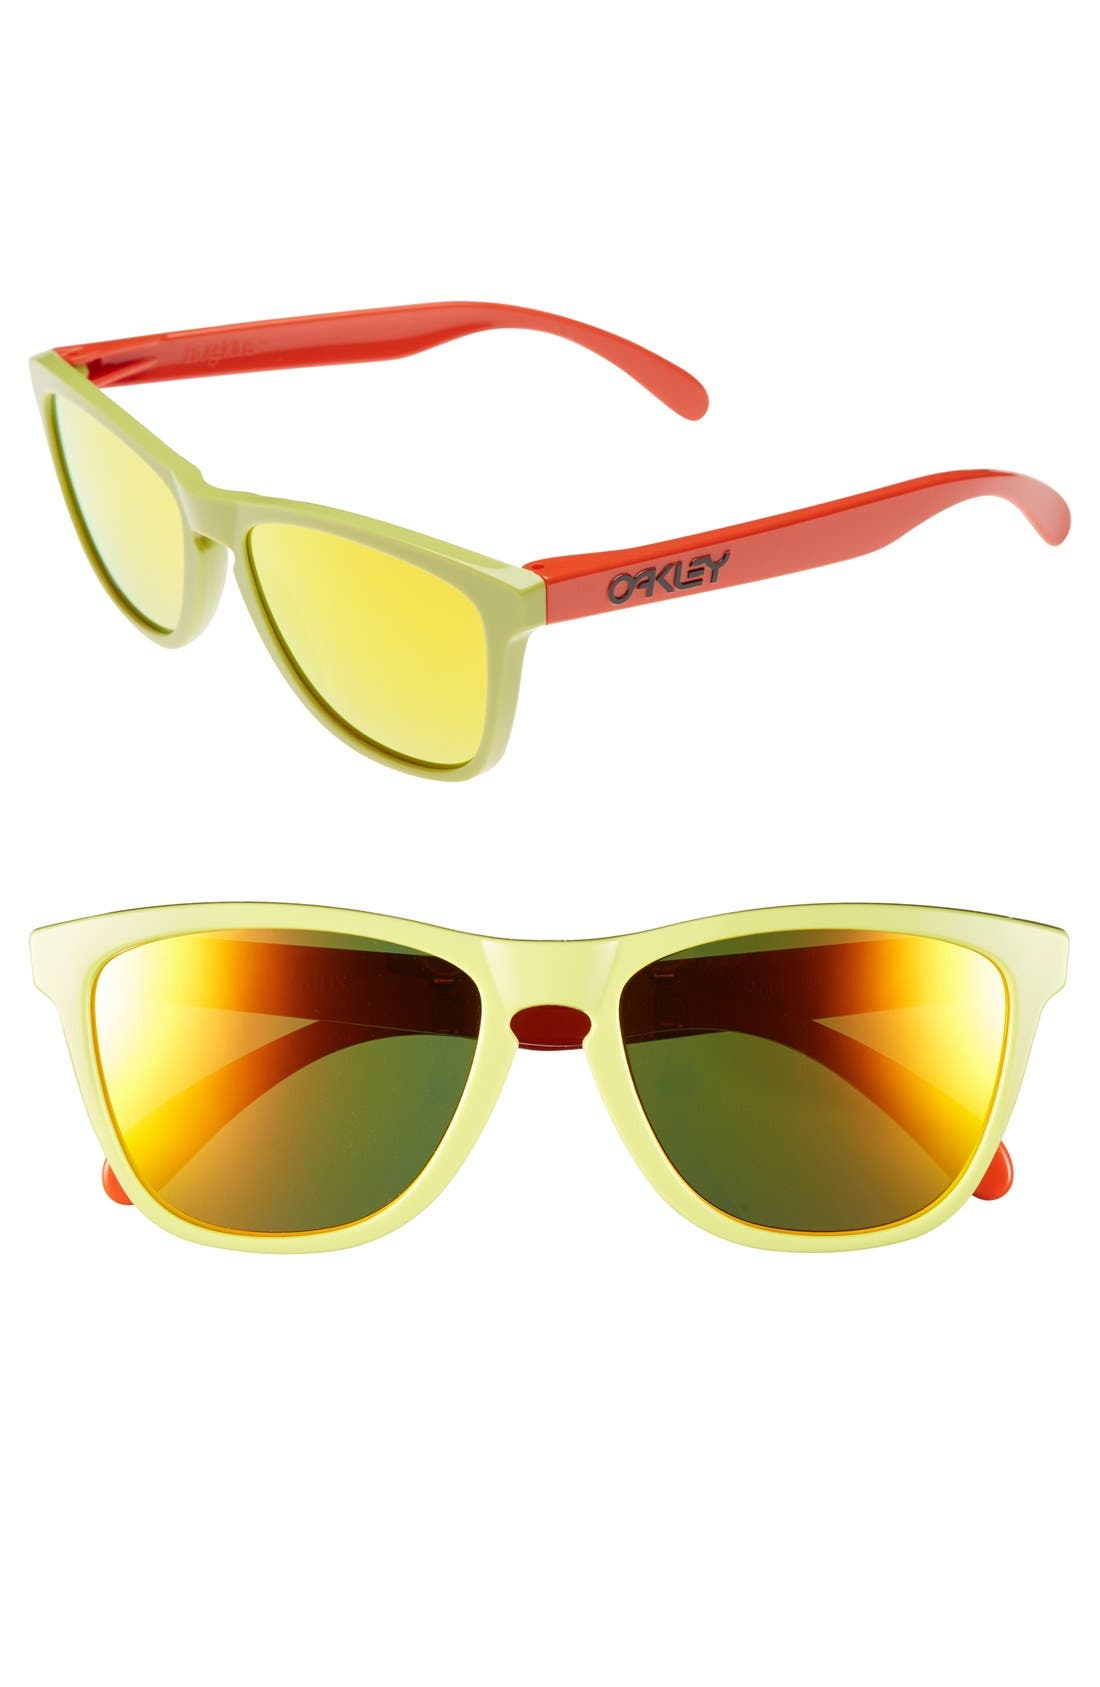 Alternate Image 1 Selected - Oakley 'Frogskins® - Aquatique' 55mm Sunglasses